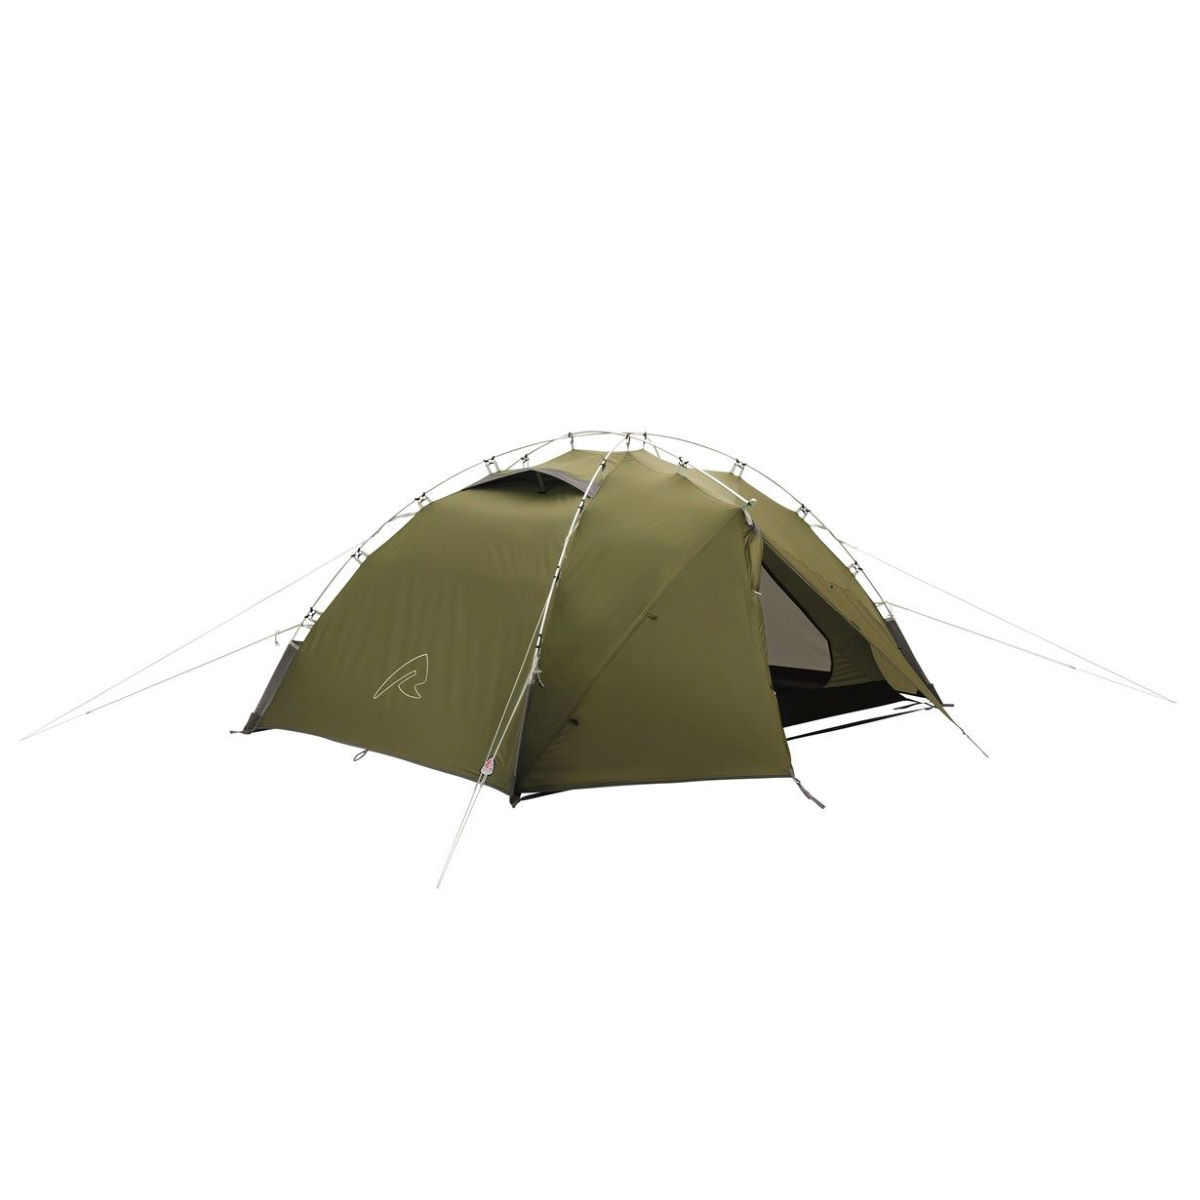 Robens Robens Lodge Pro 3Person Tent   Tents